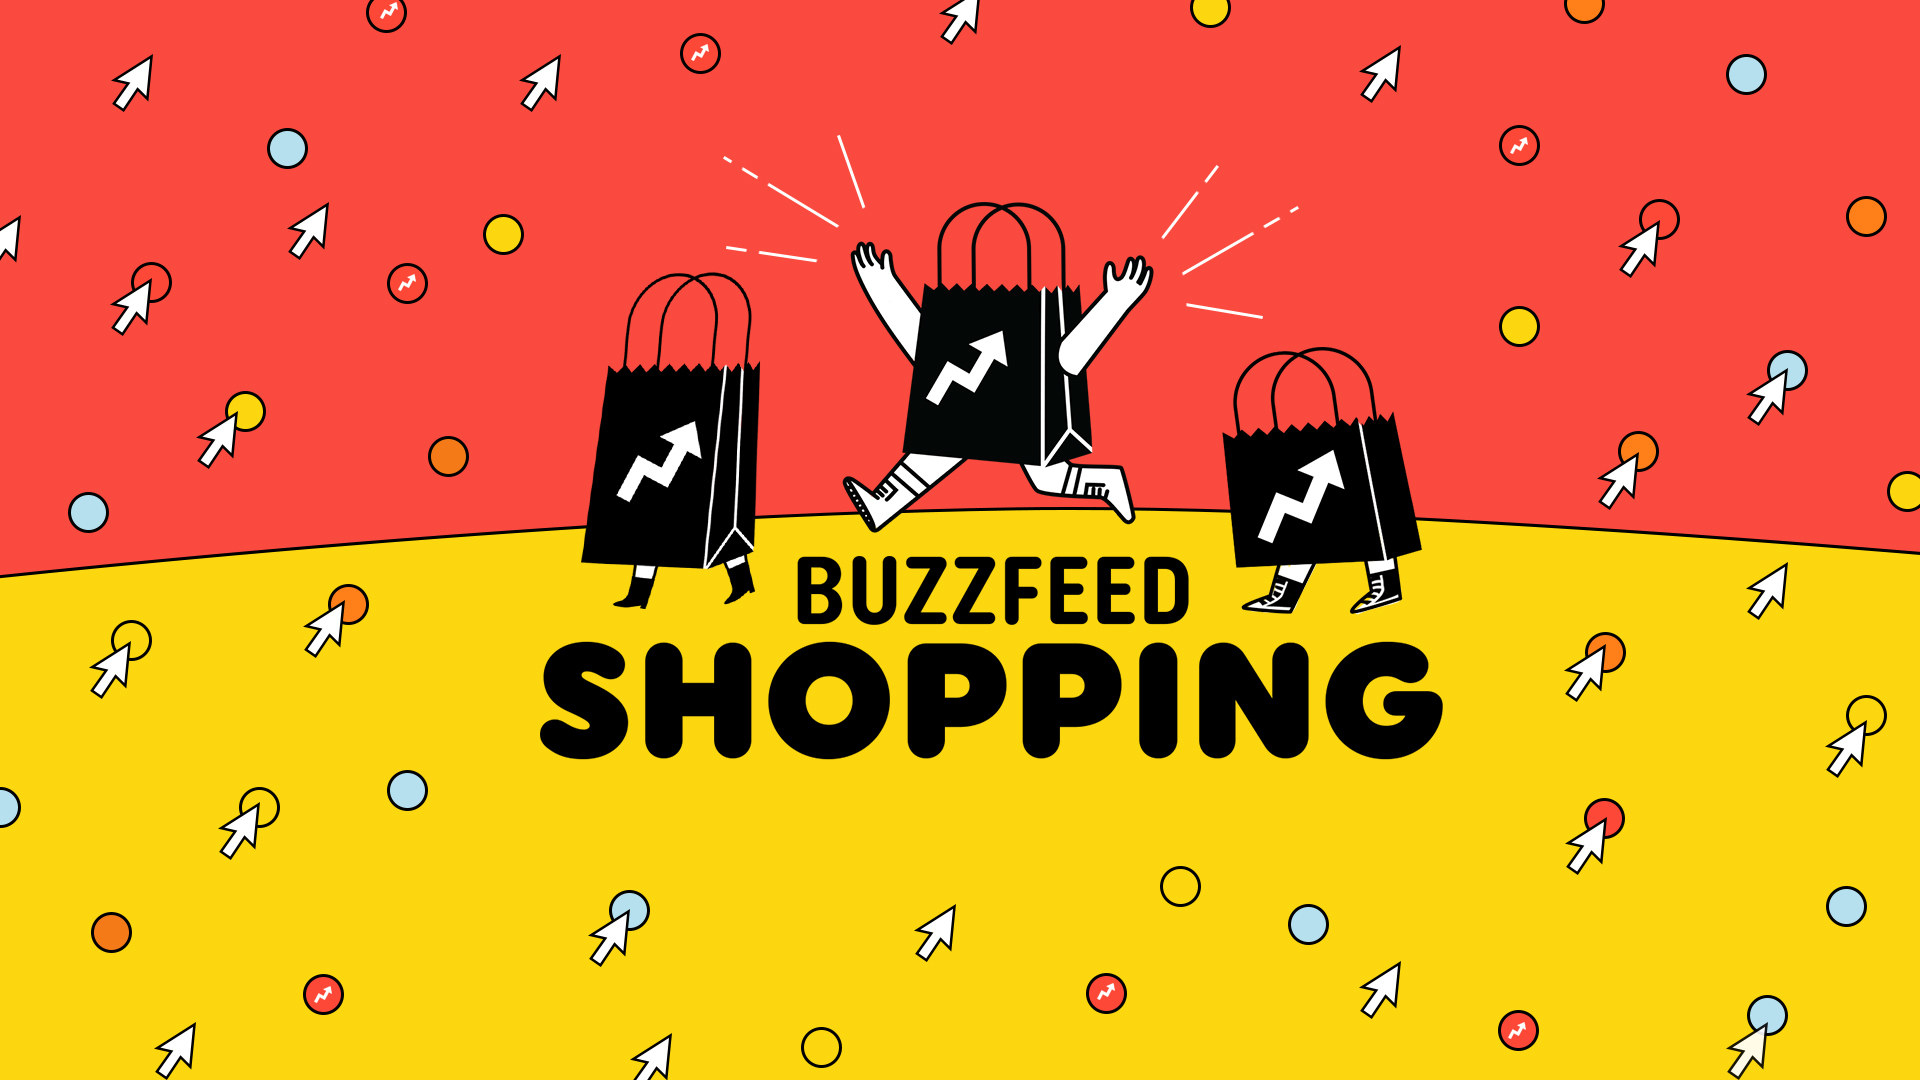 An illustration of three shopping bags with legs and a BuzzFeed logo in the center standing around the words BuzzFeed Shopping